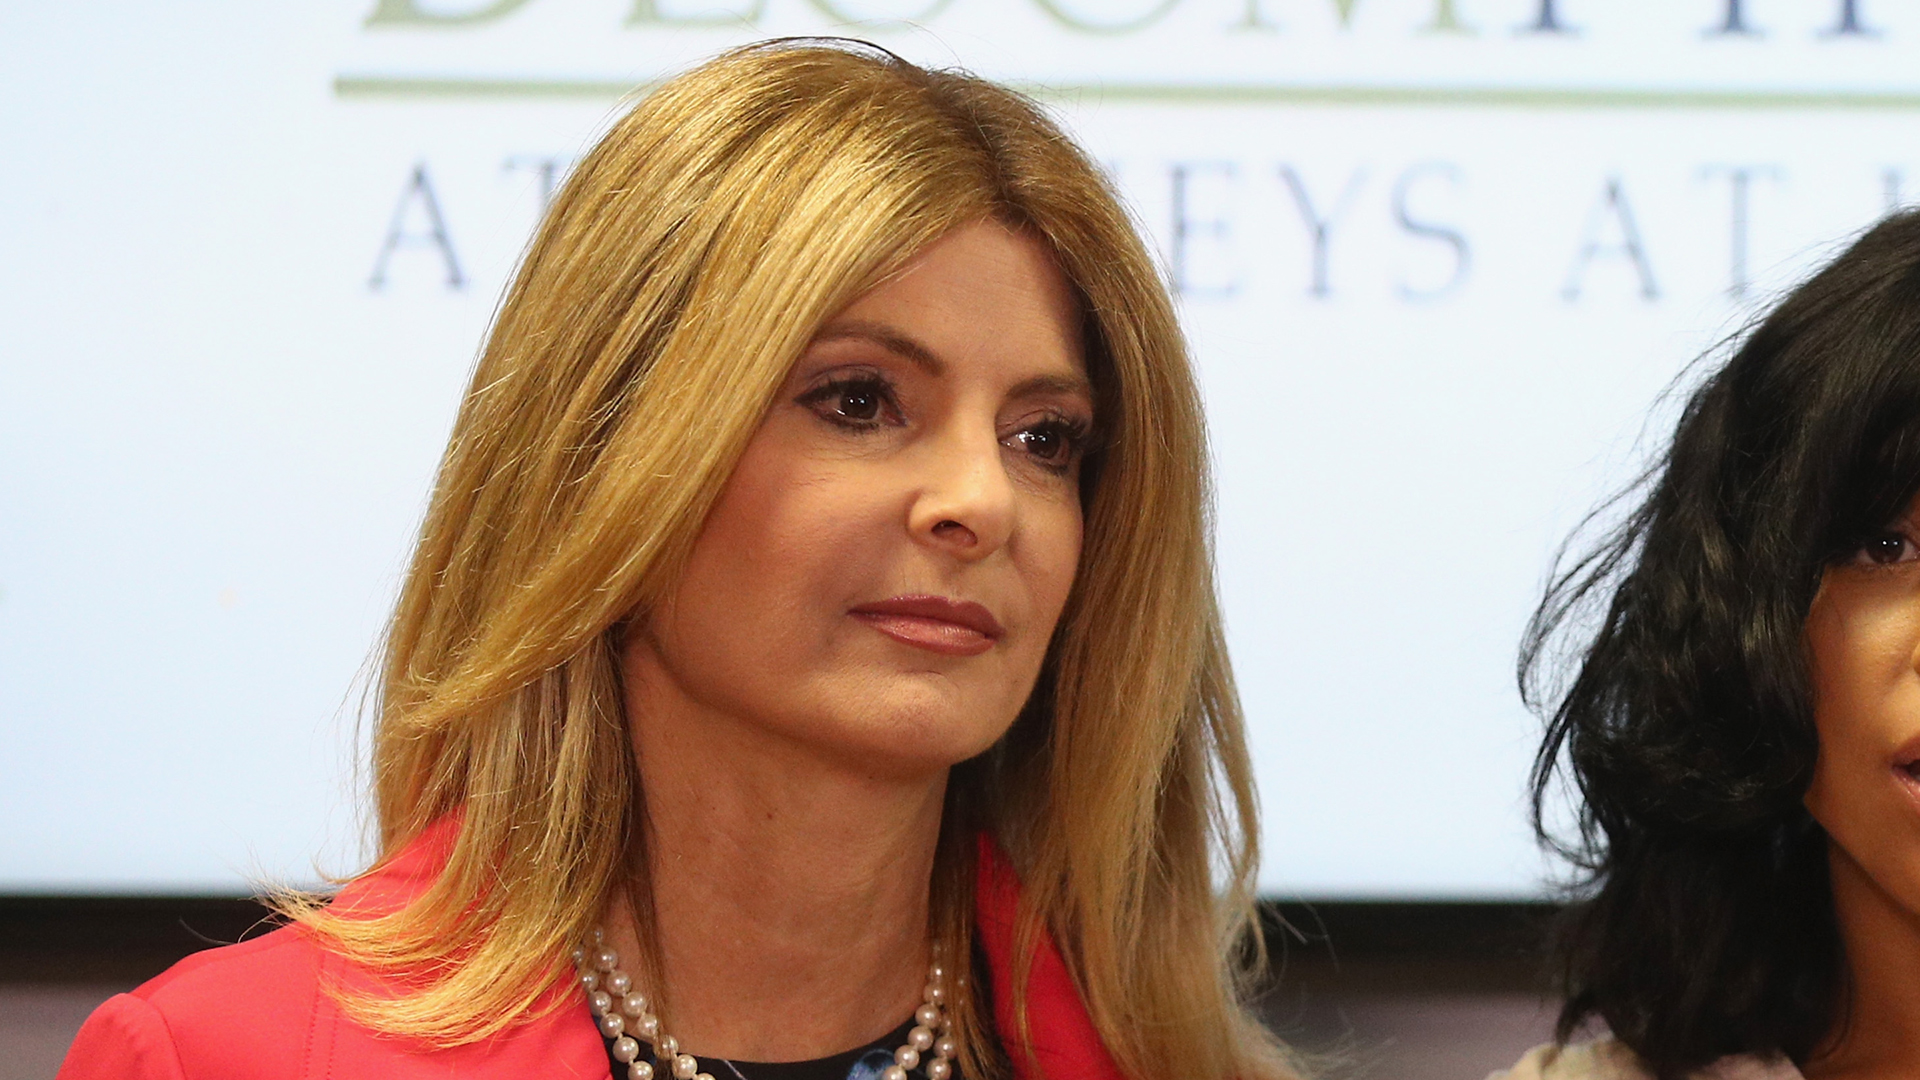 Attorney Lisa Bloom appears at a press conference on Sept. 20, 2017, in Woodland Hills, representing her client, Montia Sabbag, against accusations she is extorting comedian Kevin Hart. (Credit: Frederick M. Brown/Getty Images)